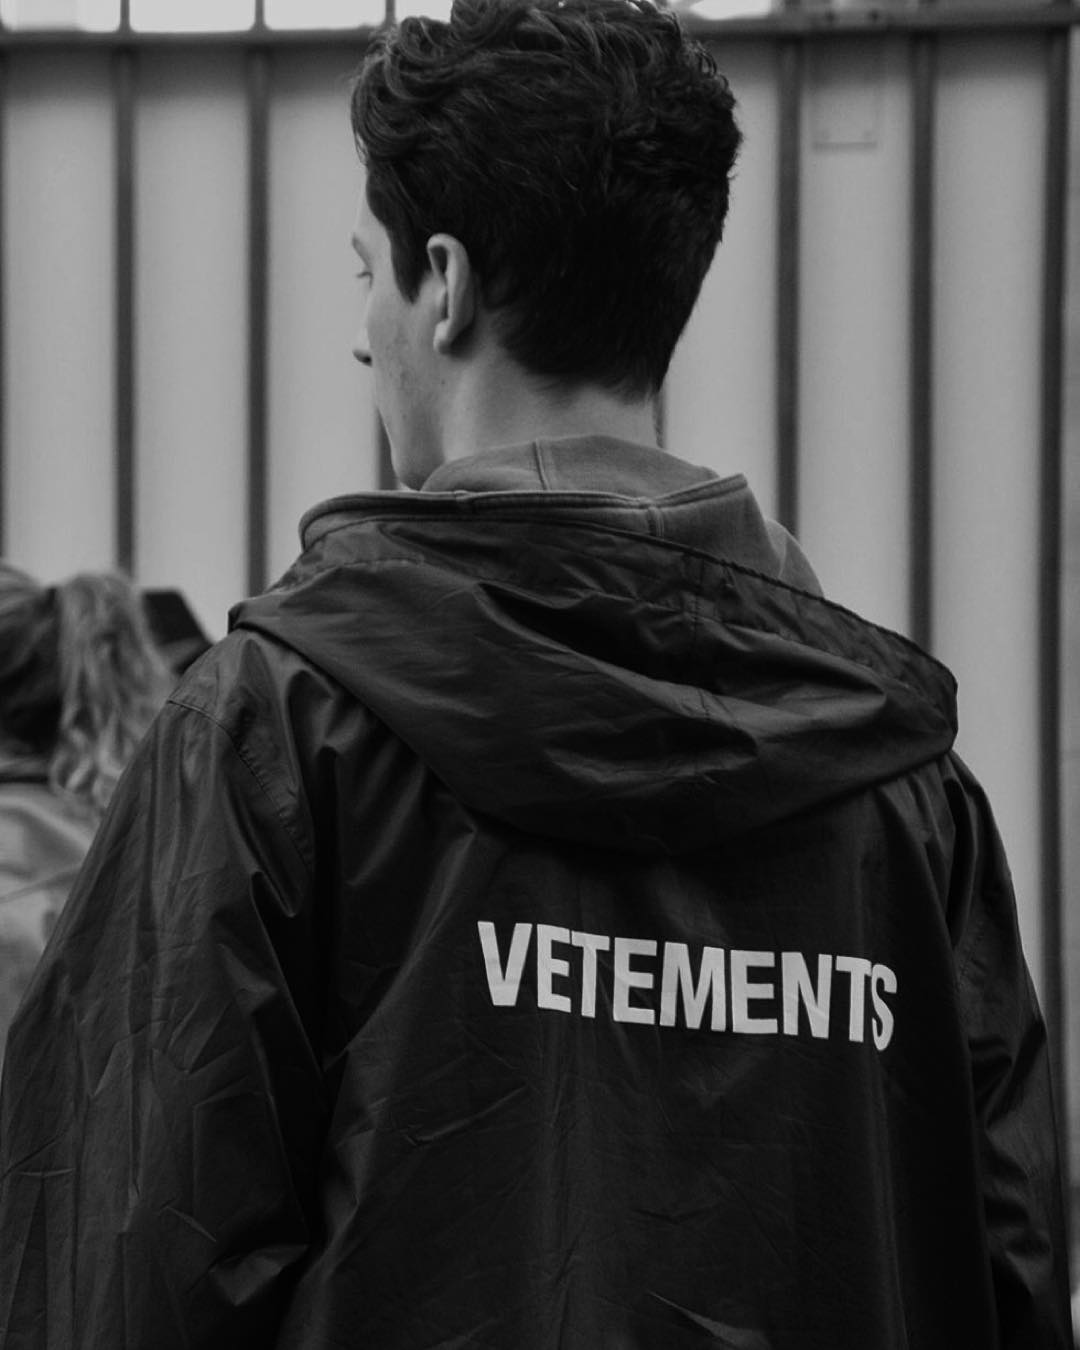 vetements-2017-spring-summer-collection